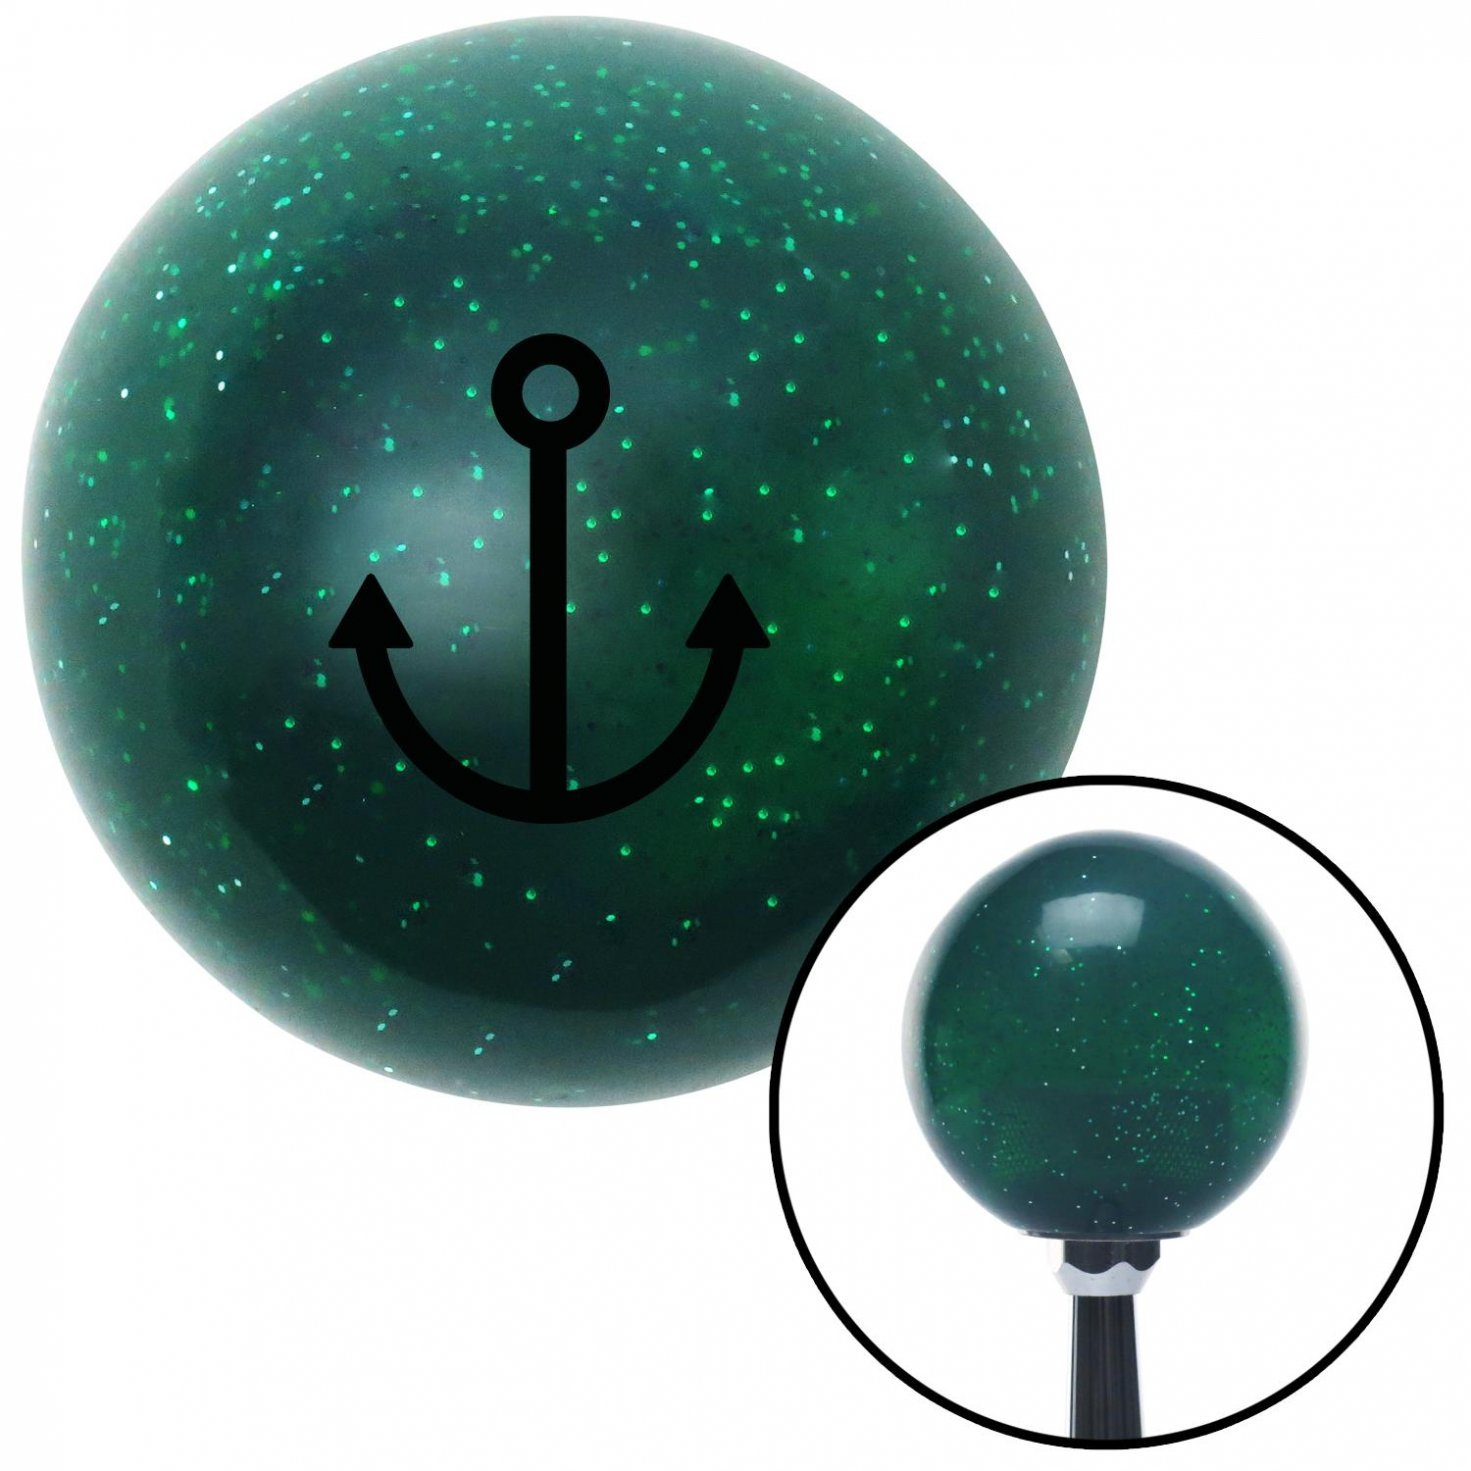 Black Anchor Design American Shifter 61185 Green Metal Flake Shift Knob with 16mm x 1.5 Insert